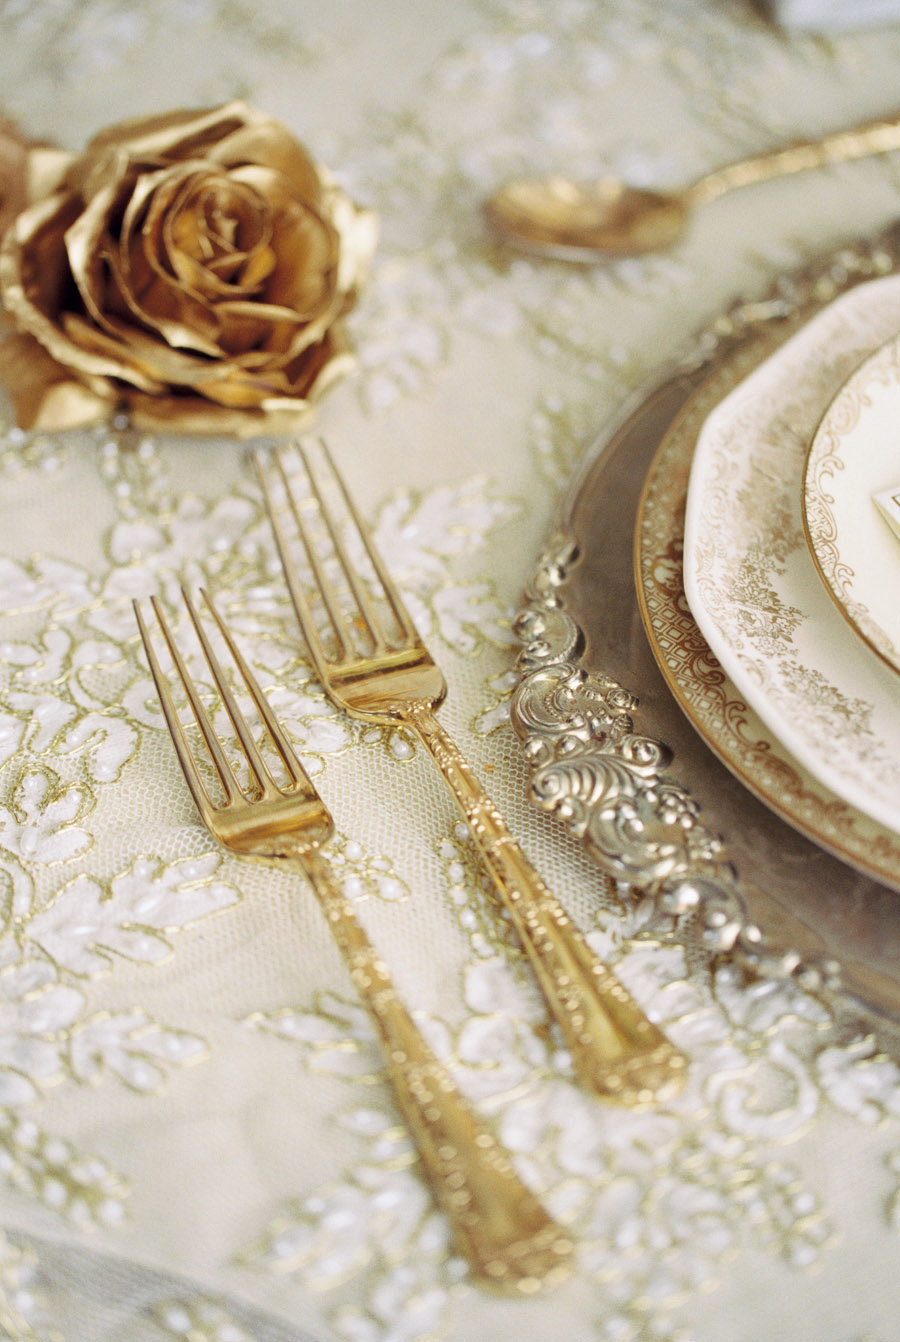 gold vintage tableware for wedding table settings | by Lara Lam Photography